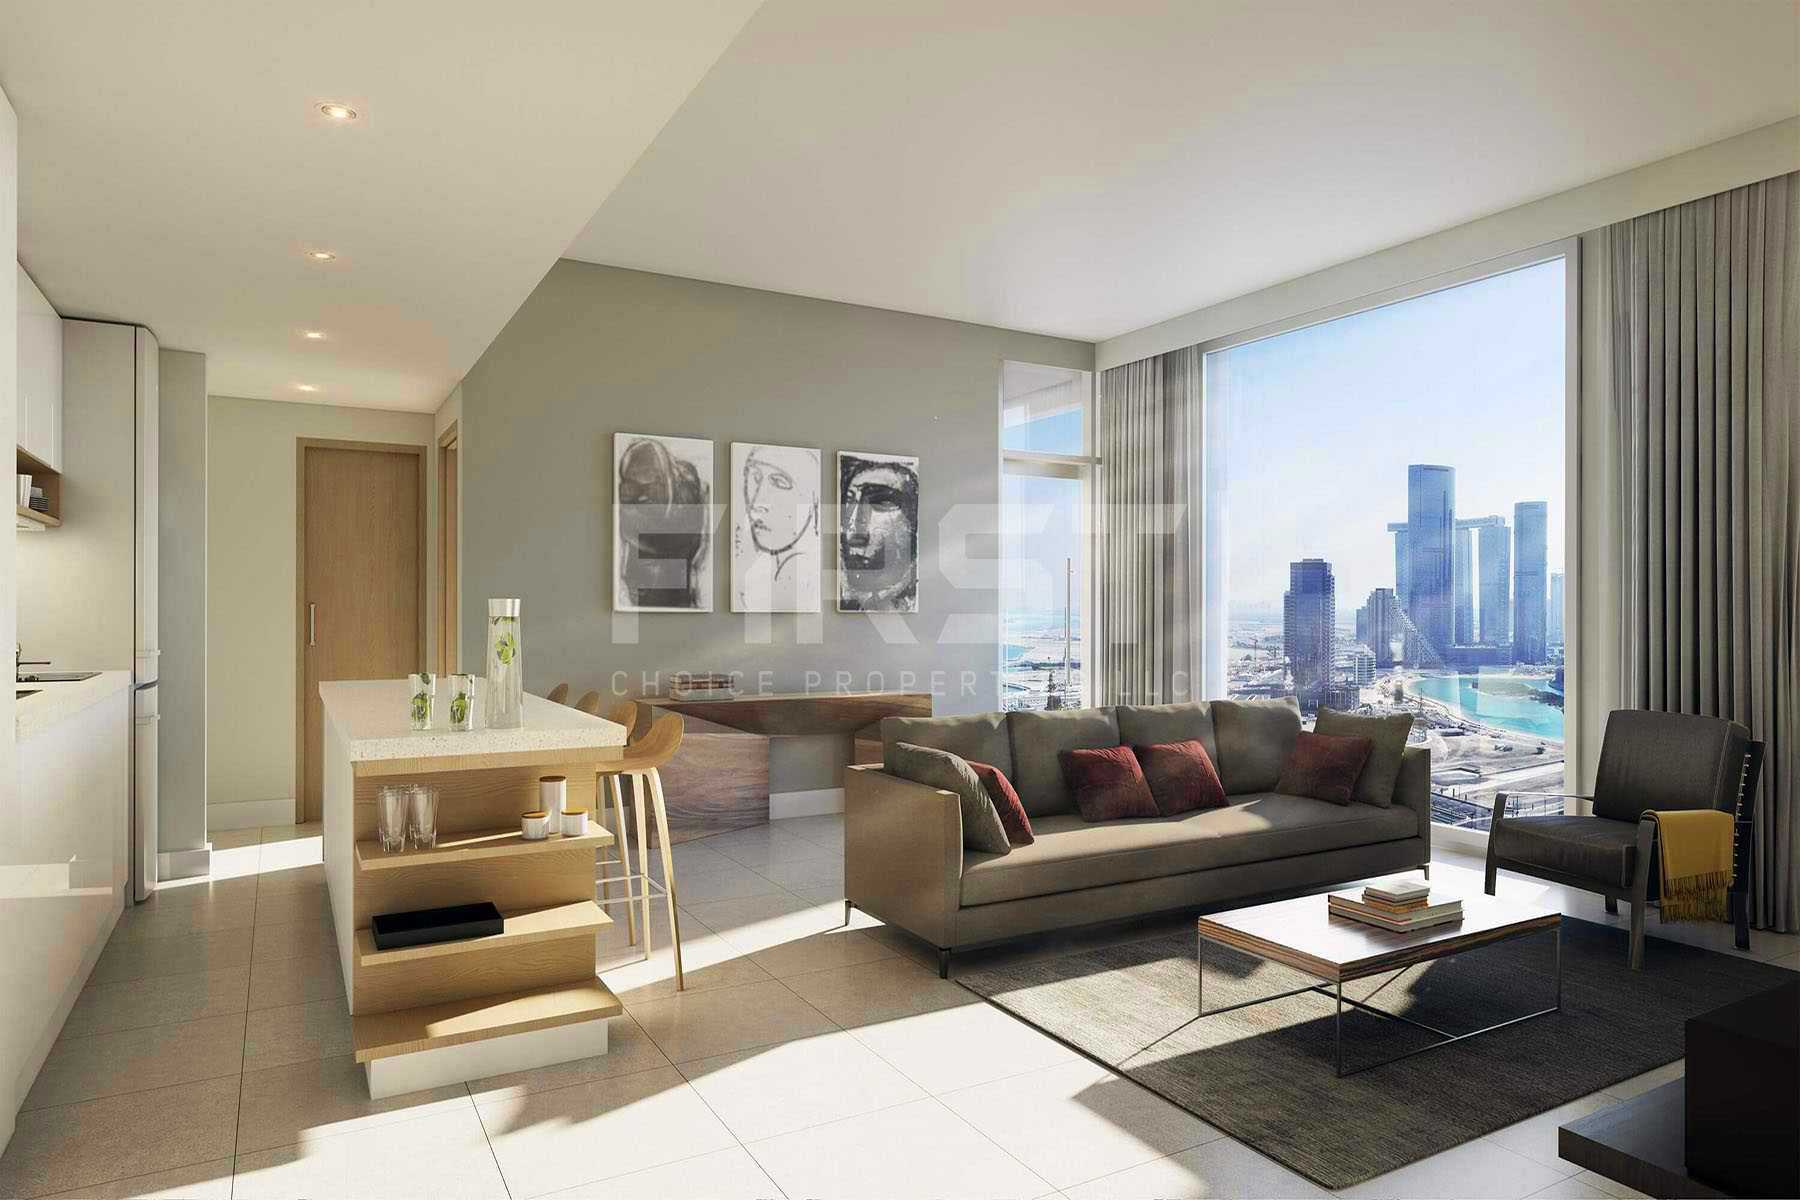 Studio,1 Bedroom, 2 Bedroom, 3 Bedroom,Apartment in The Bridges,Shams Abu Dhabi,Al Reem Island- Abu Dhabi-UAE (4).jpg